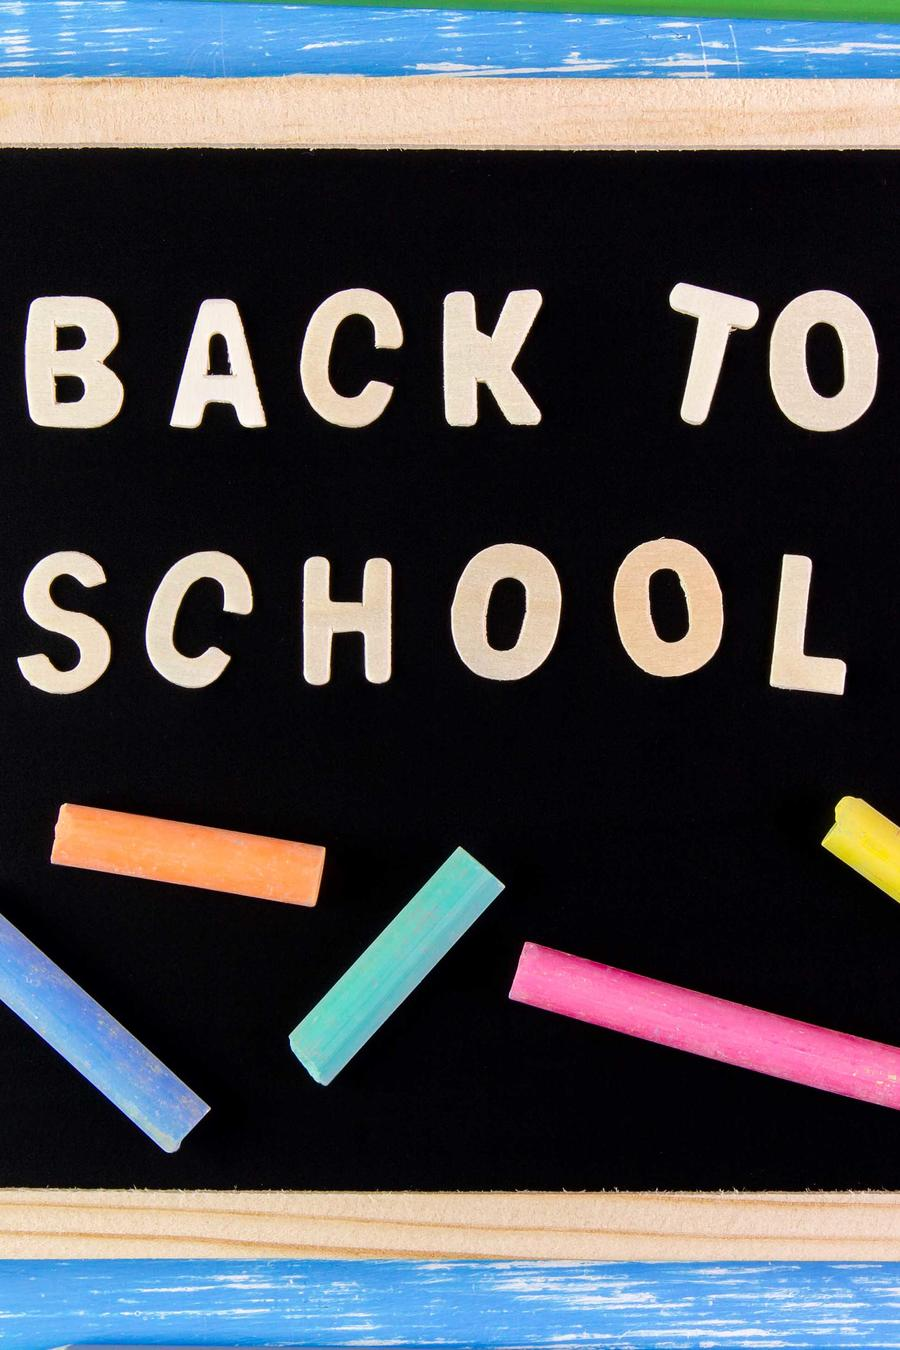 Back To School Text On Blackboard At Wooden Table